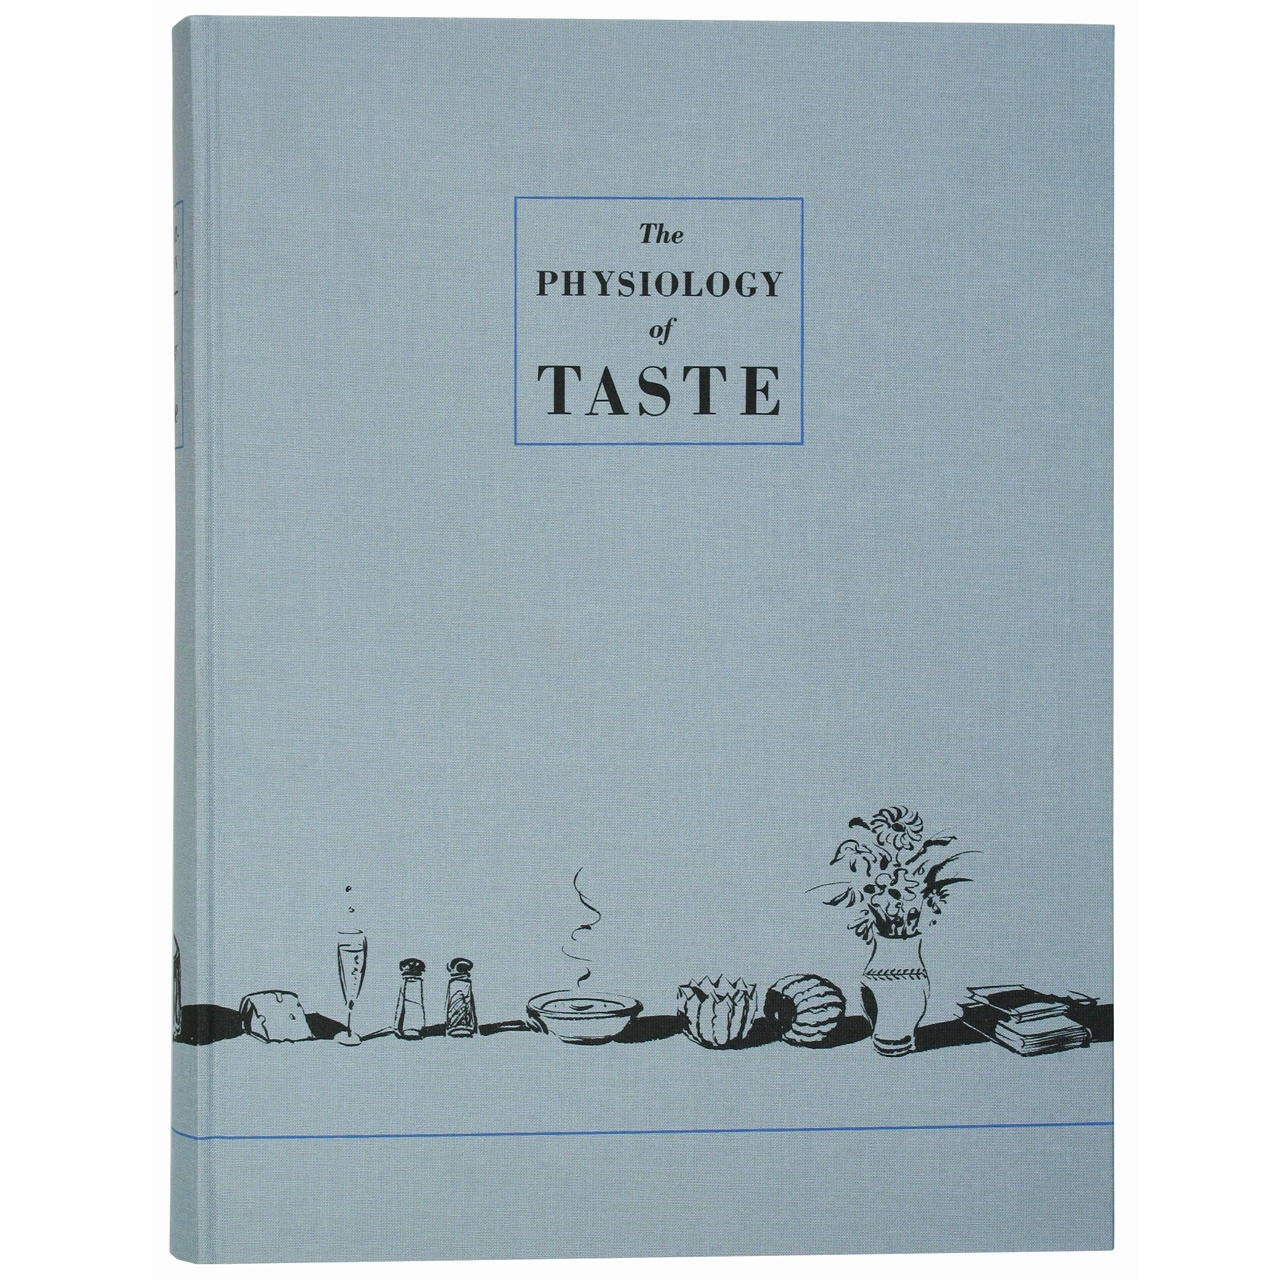 Physiology of Taste Savarin Quot The Physiology of Taste Quot